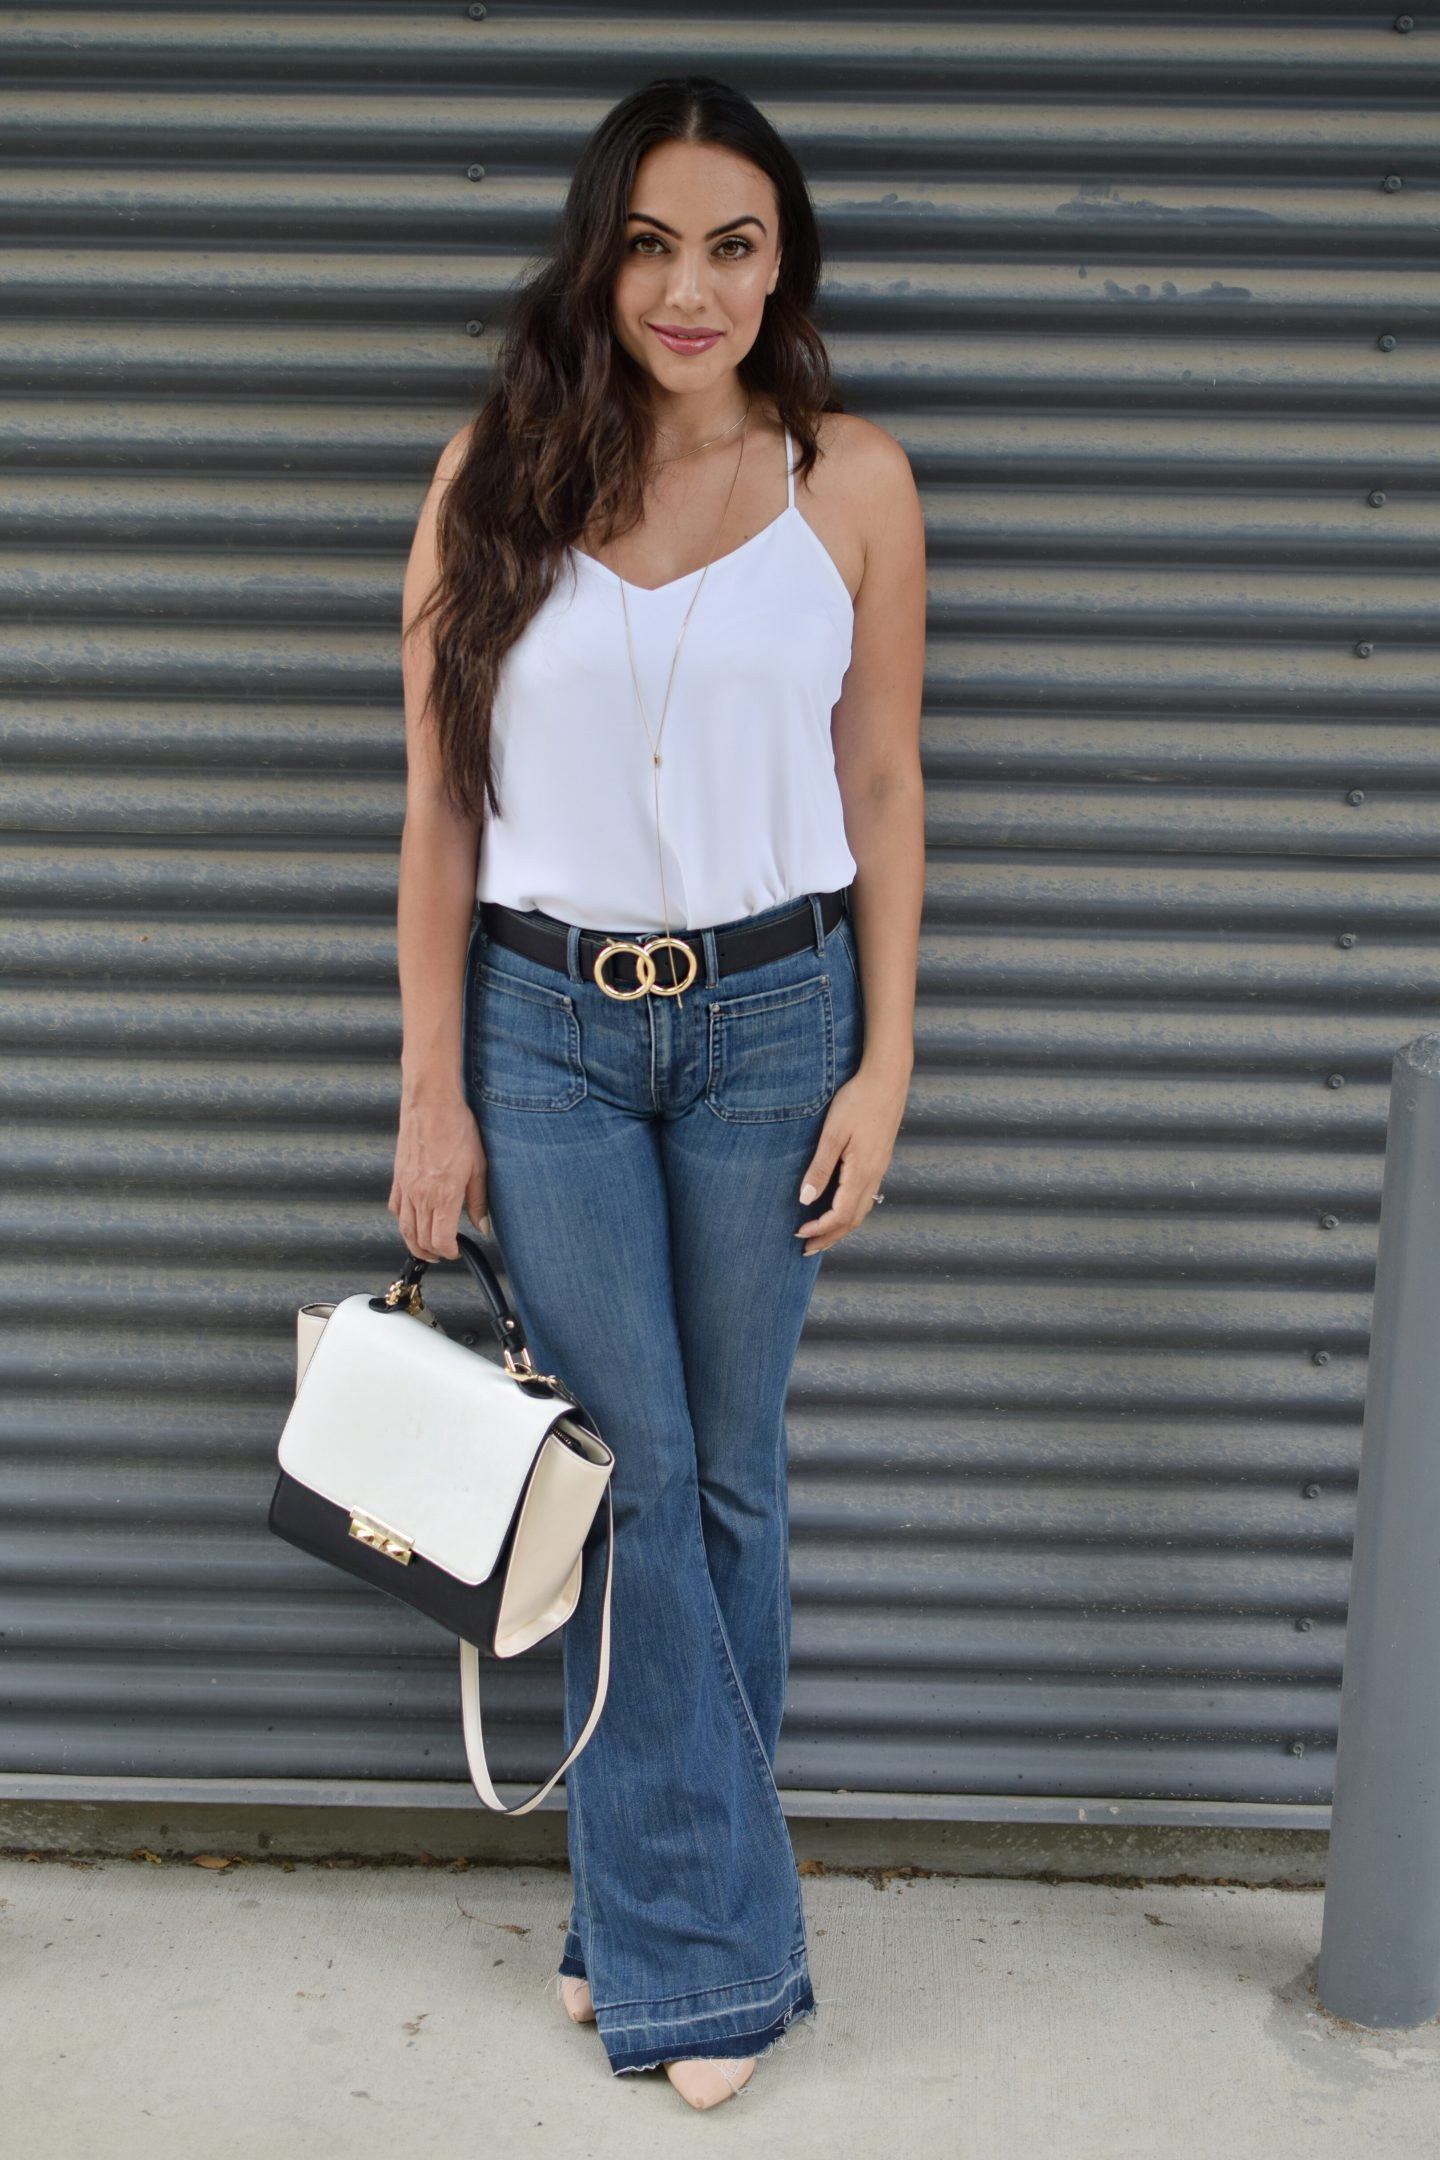 HOW I STYLE FLARE JEANS